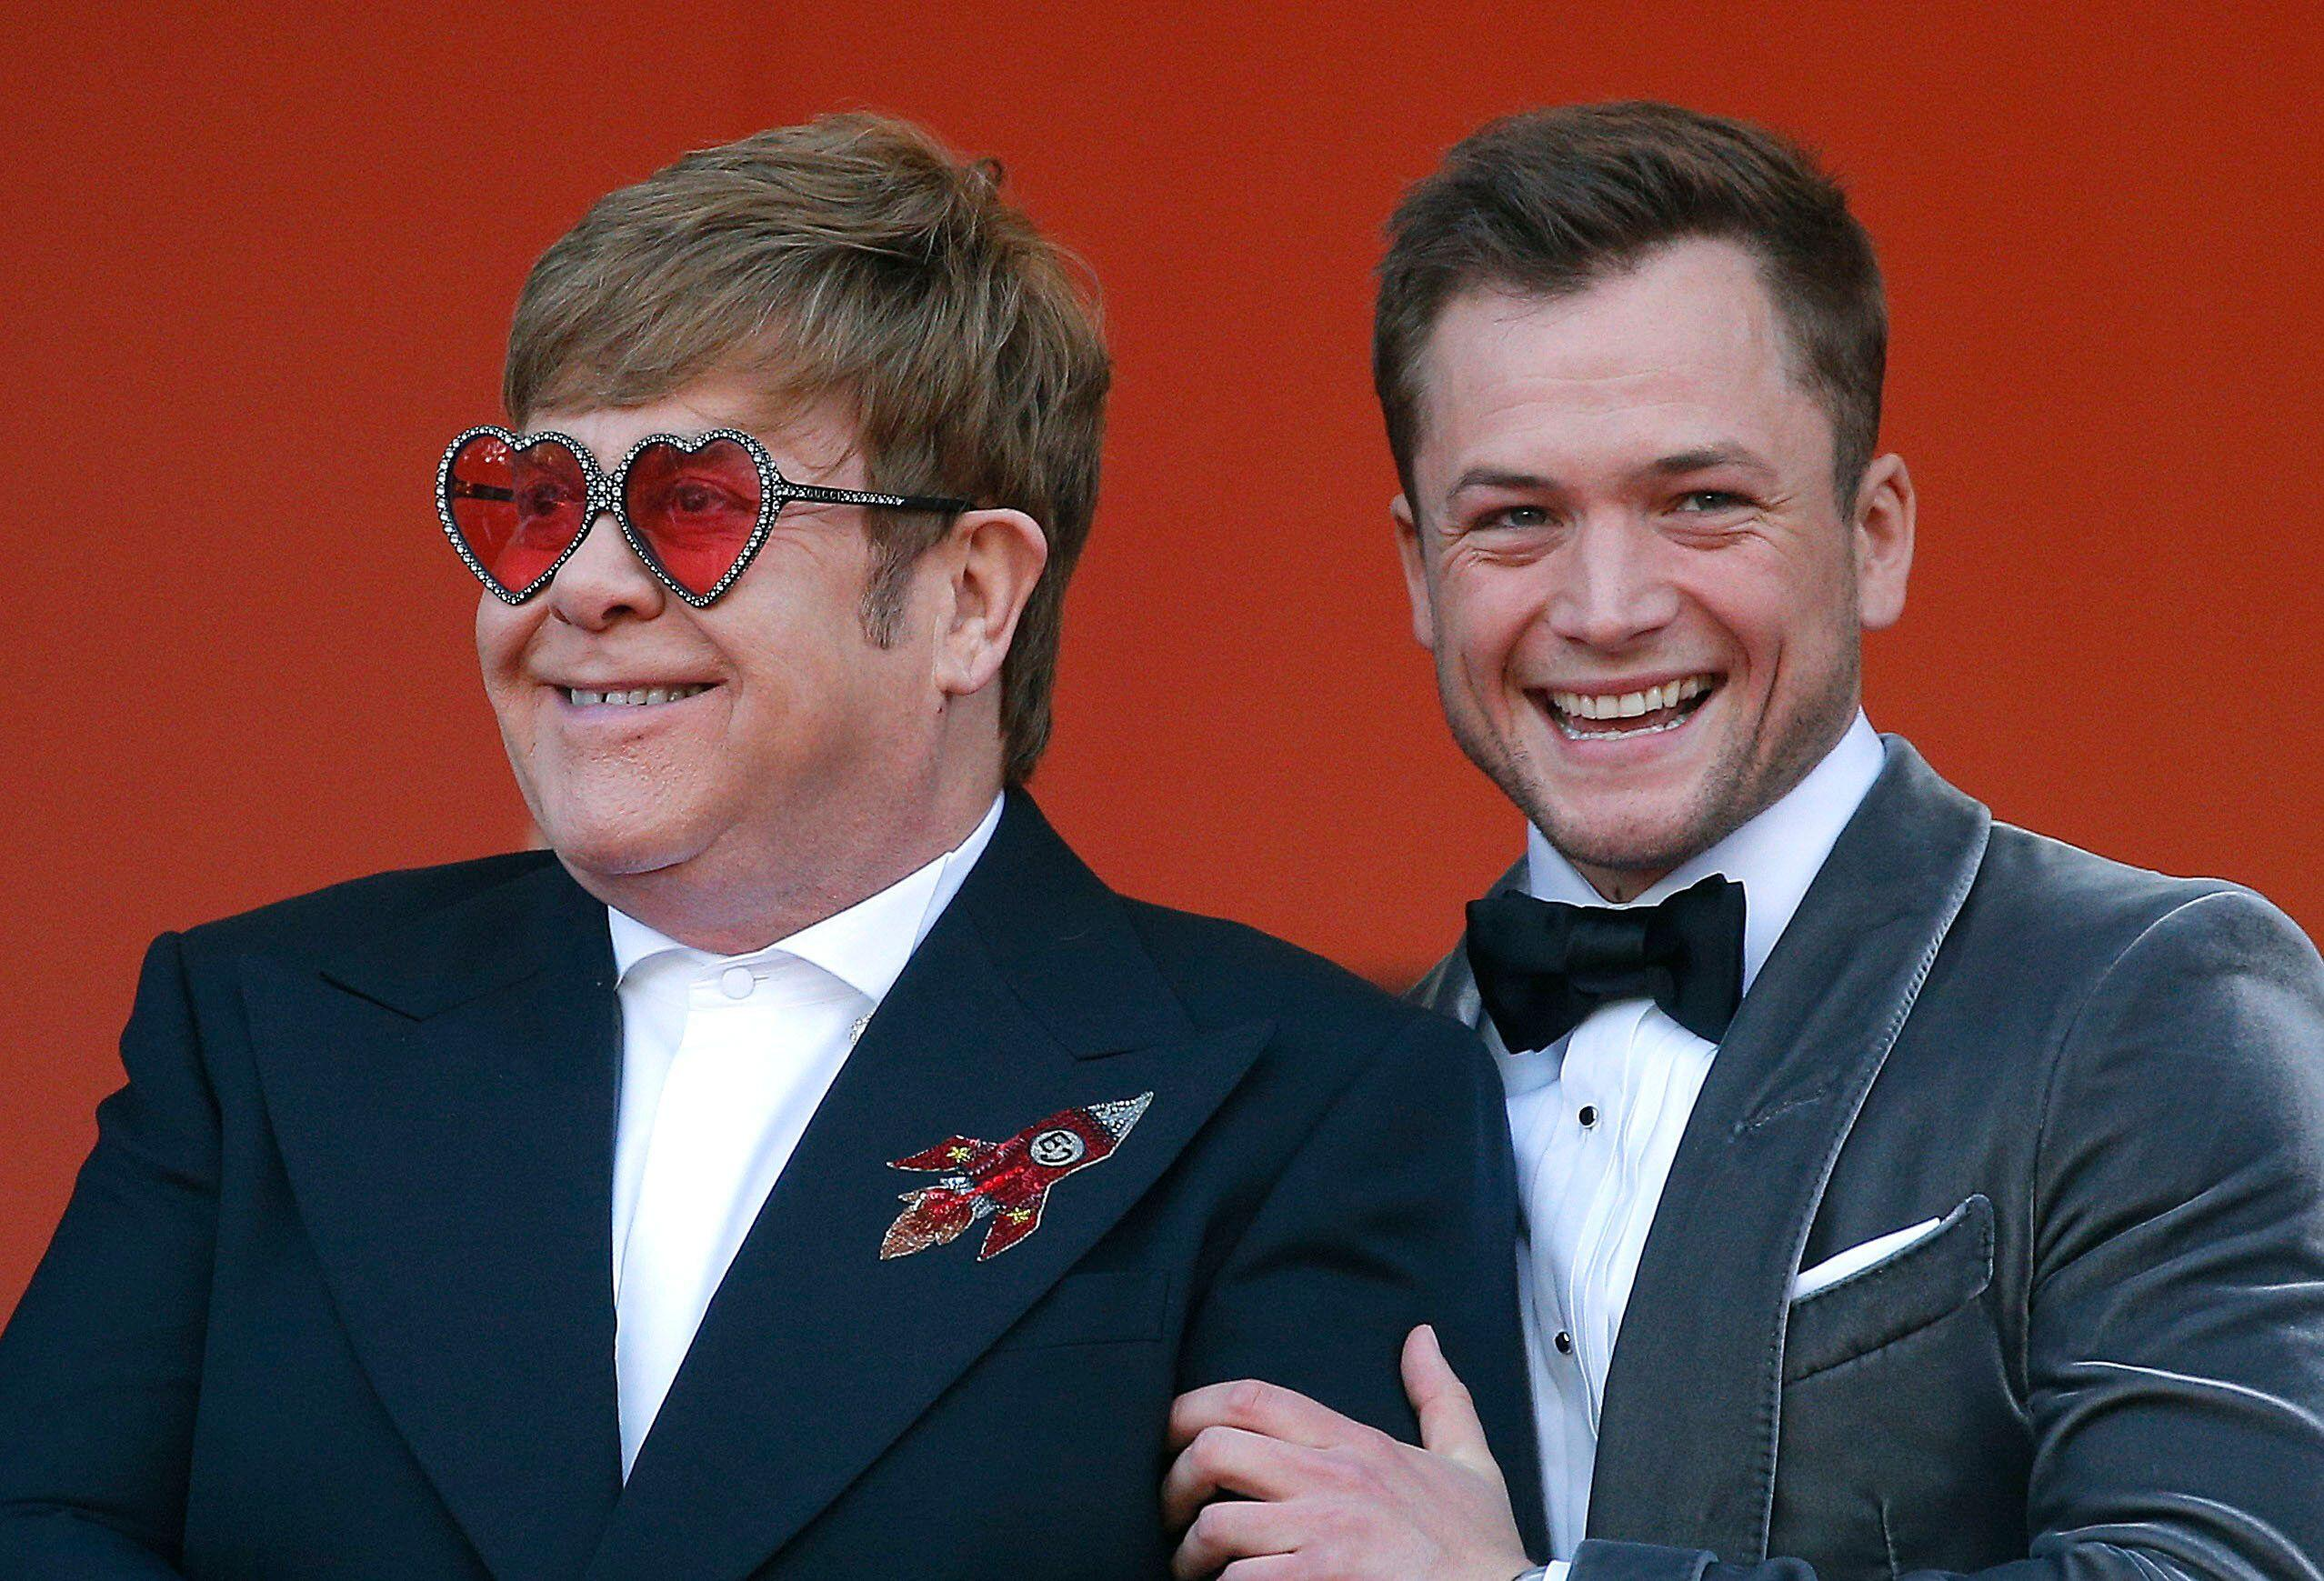 No cuts for Elton John's biopic Rocketman in India